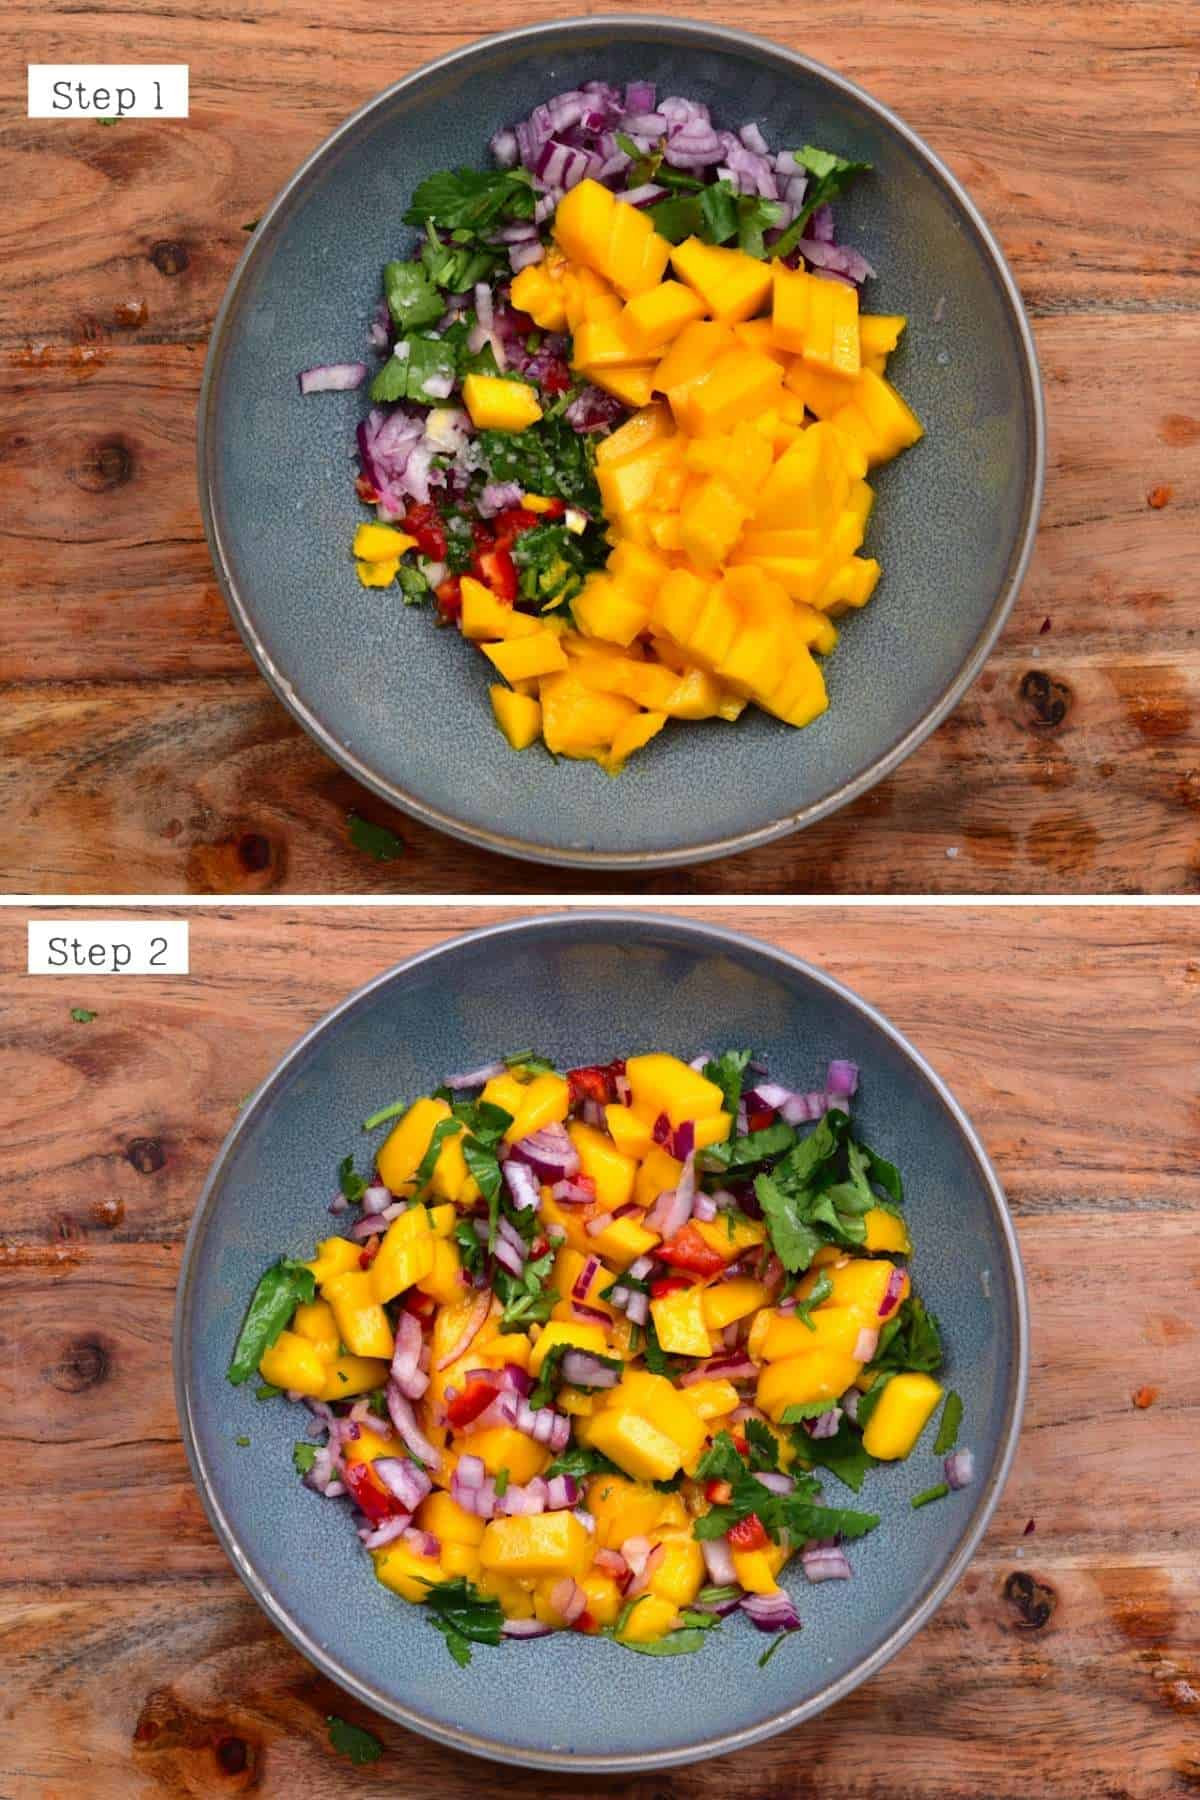 Steps for mixing mango salsa